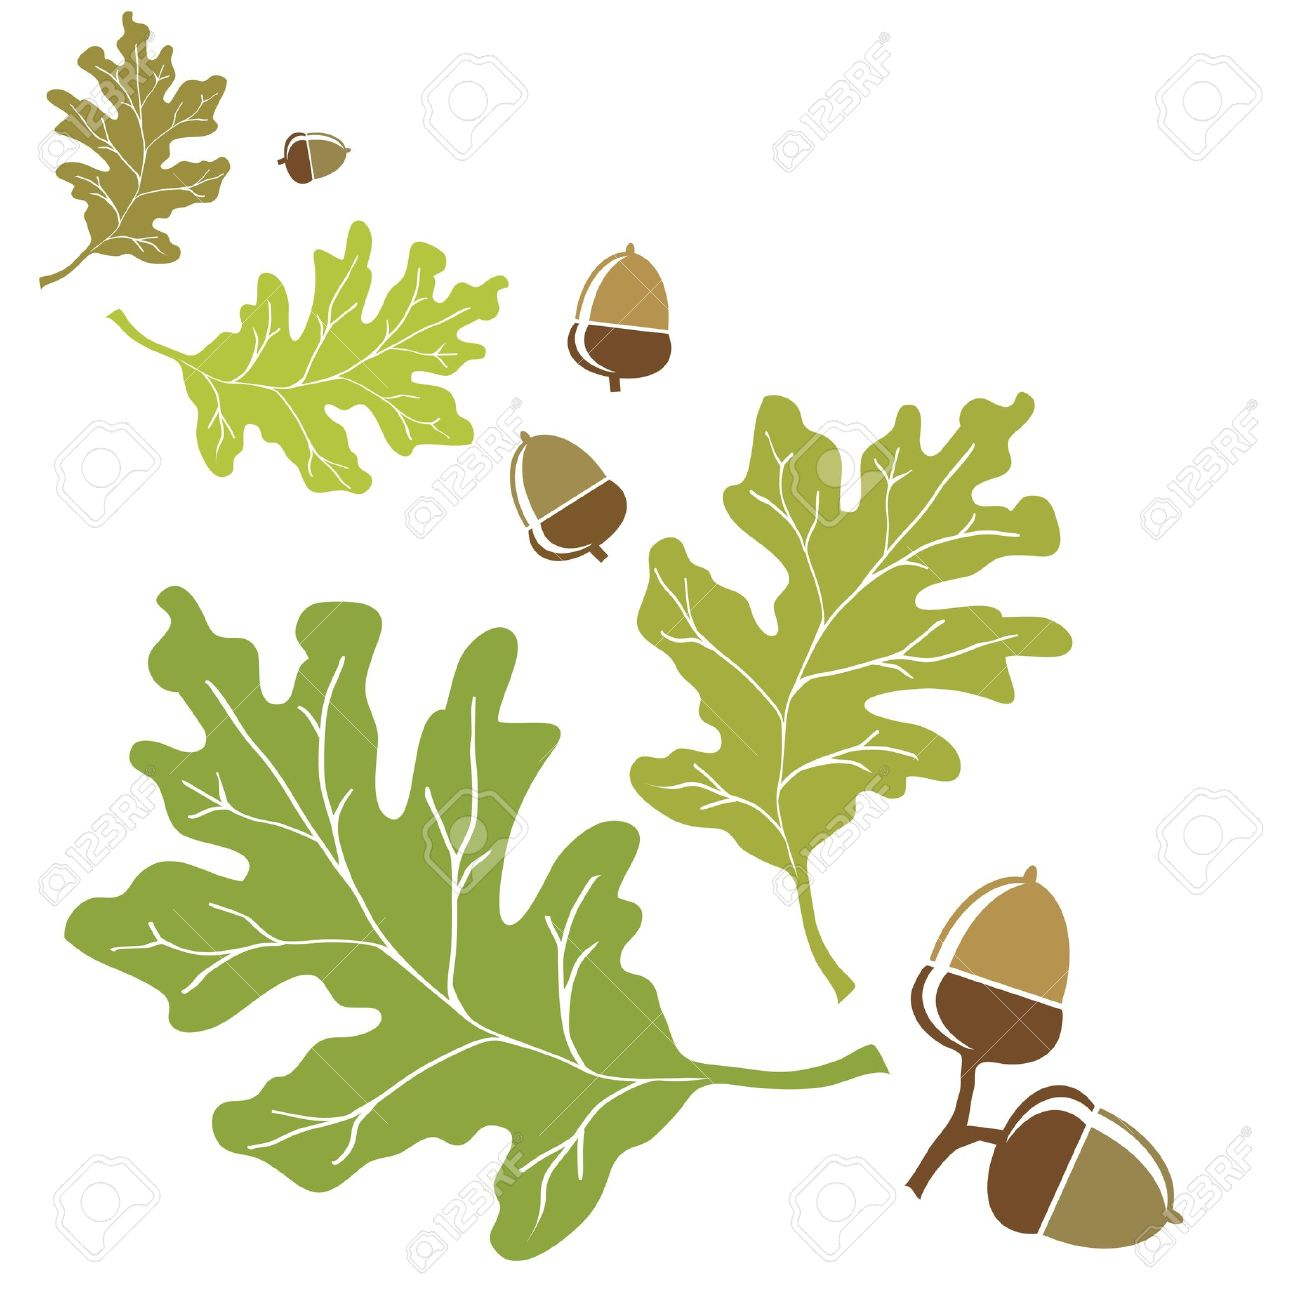 36 599 oak leaf cliparts stock vector and royalty free oak leaf